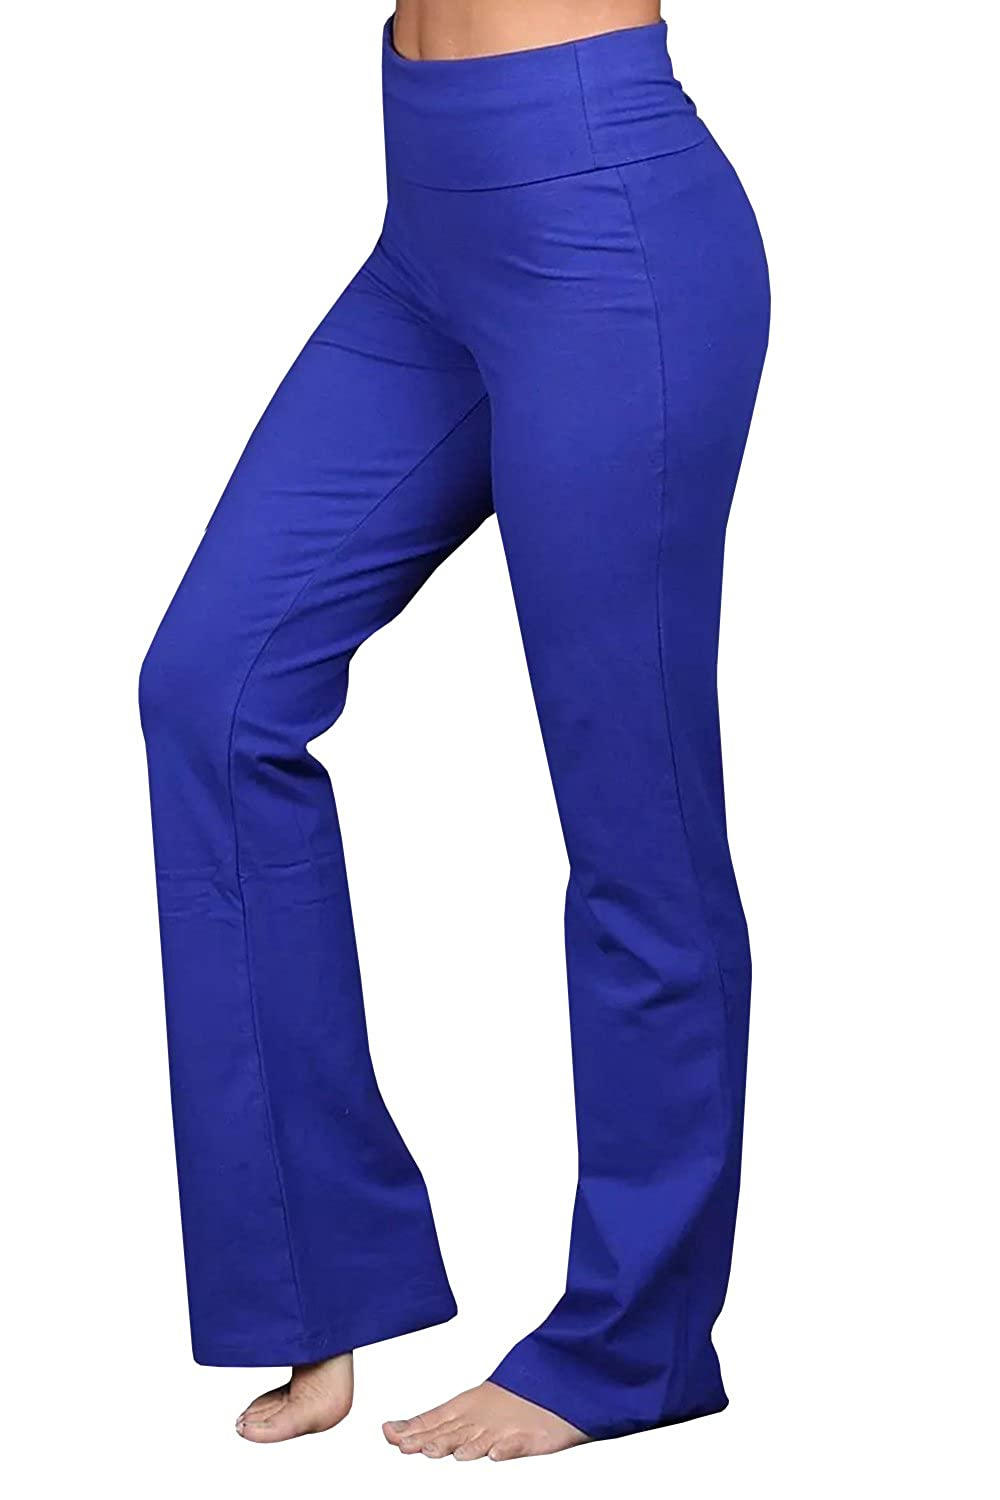 8e4d0b319b093 ... to wear, with good stretch. Fabric is designed to contour perfectly to  your body, giving you a streamlined look. ✿ Features: Bootcut yoga pants,  ...